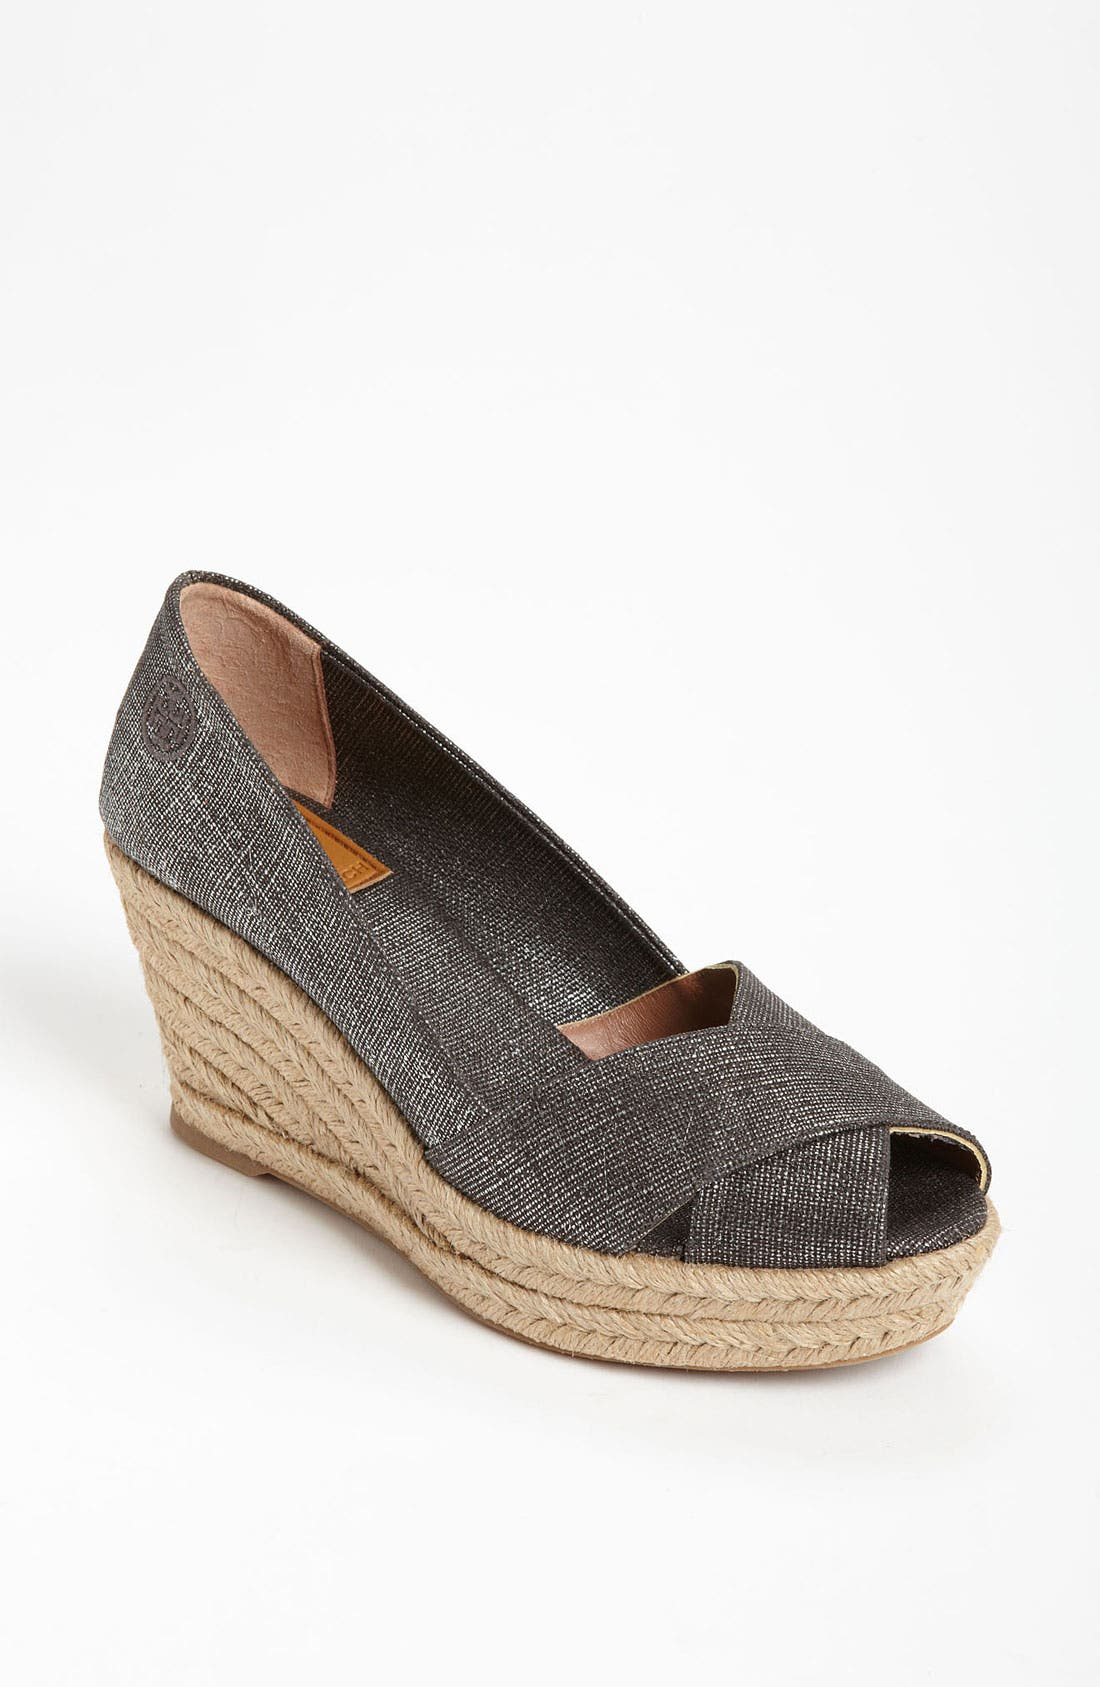 Alternate Image 1 Selected - Tory Burch 'Filipa' Wedge Espadrille